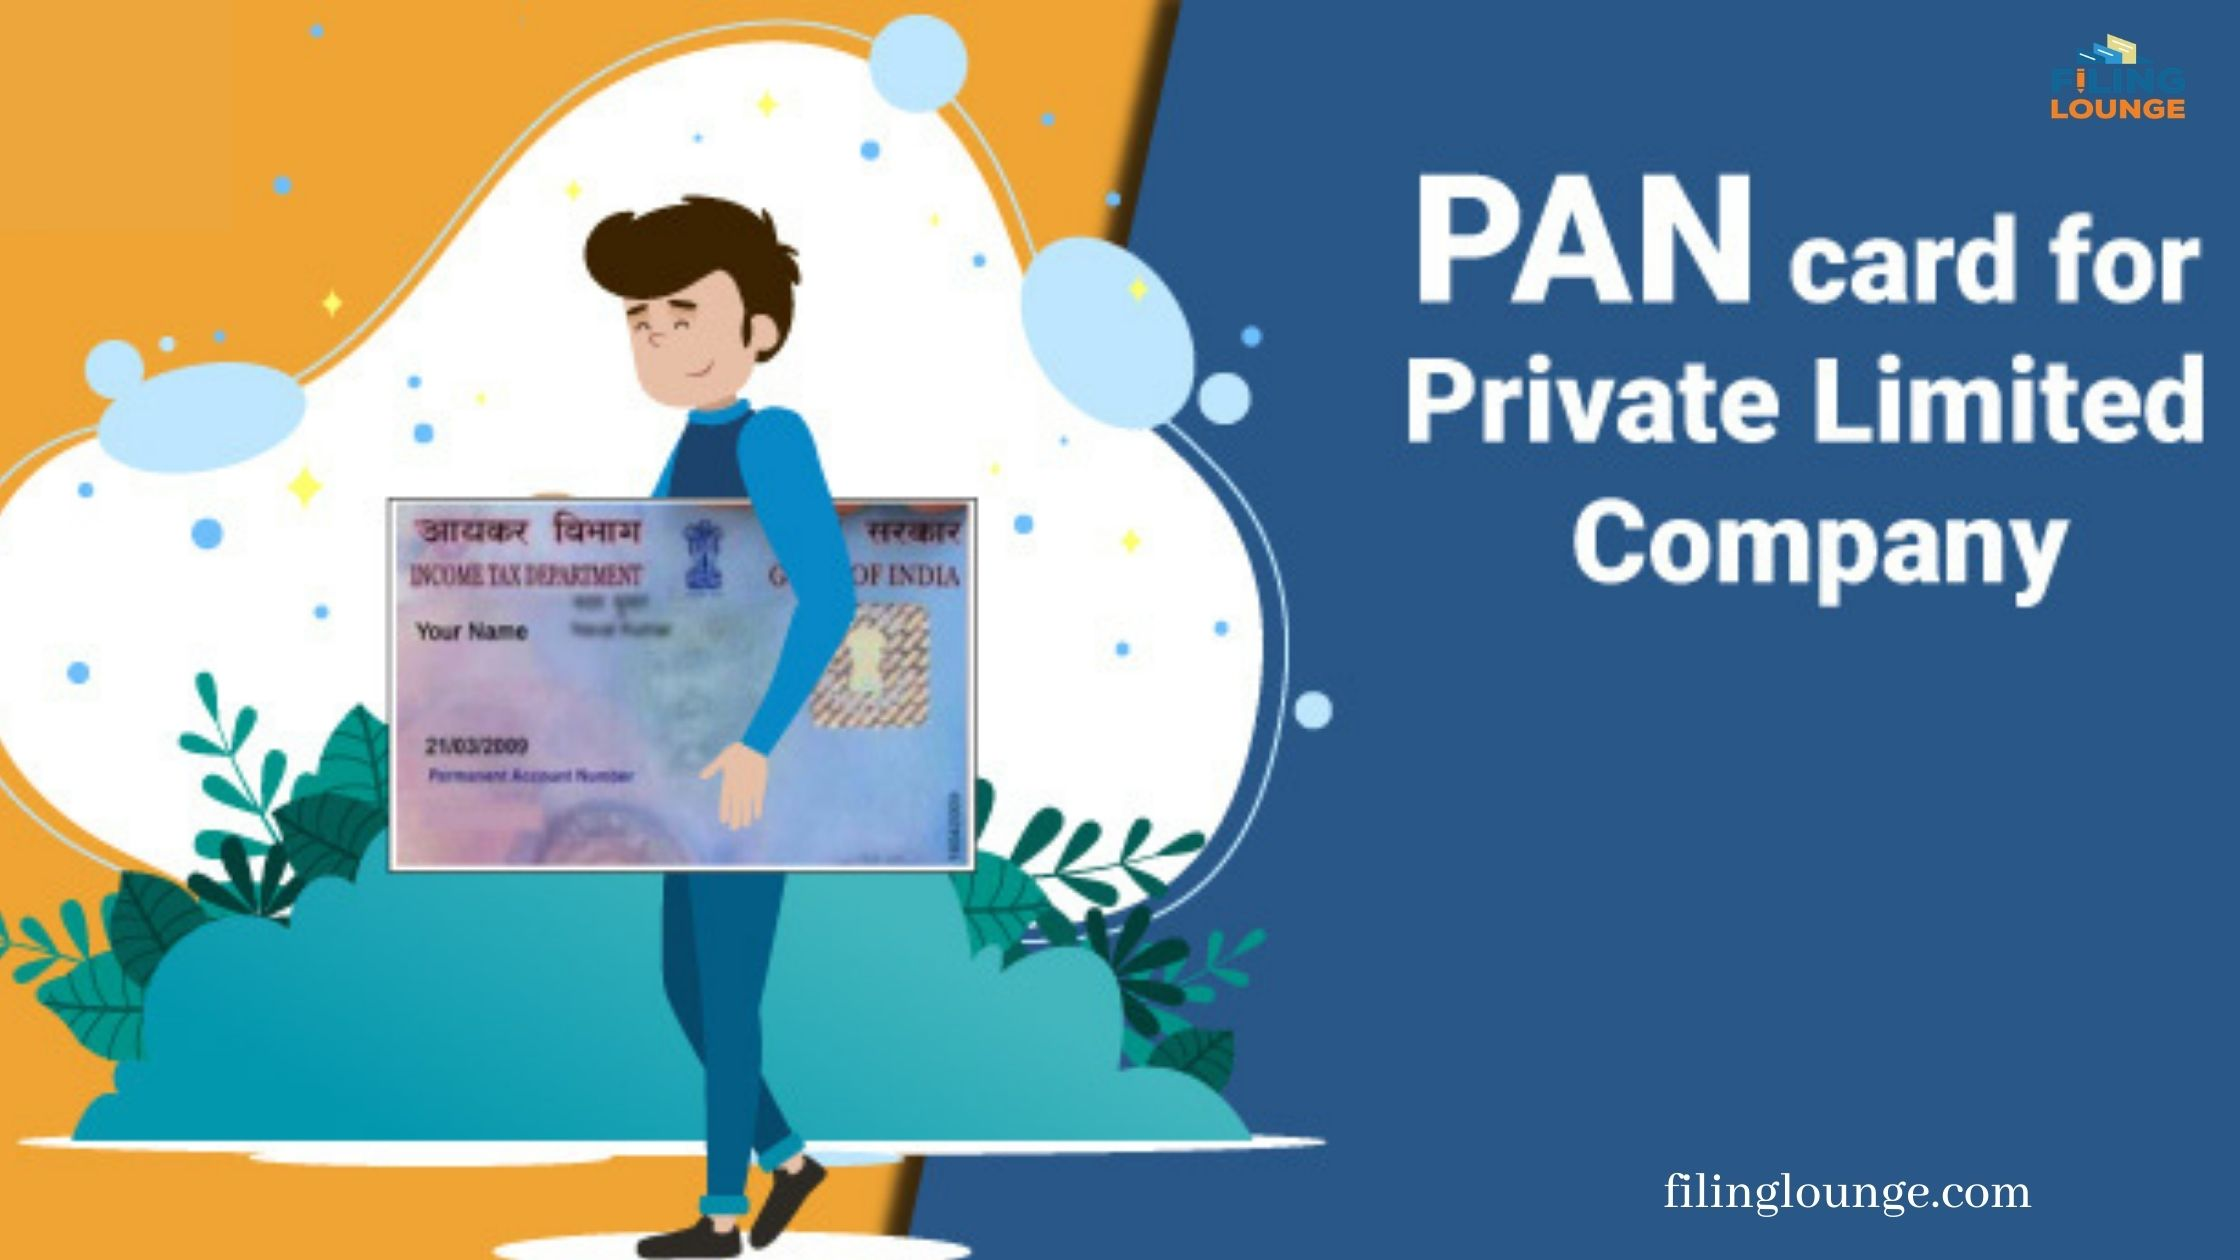 How to Get a PAN Card for a Private Limited Company